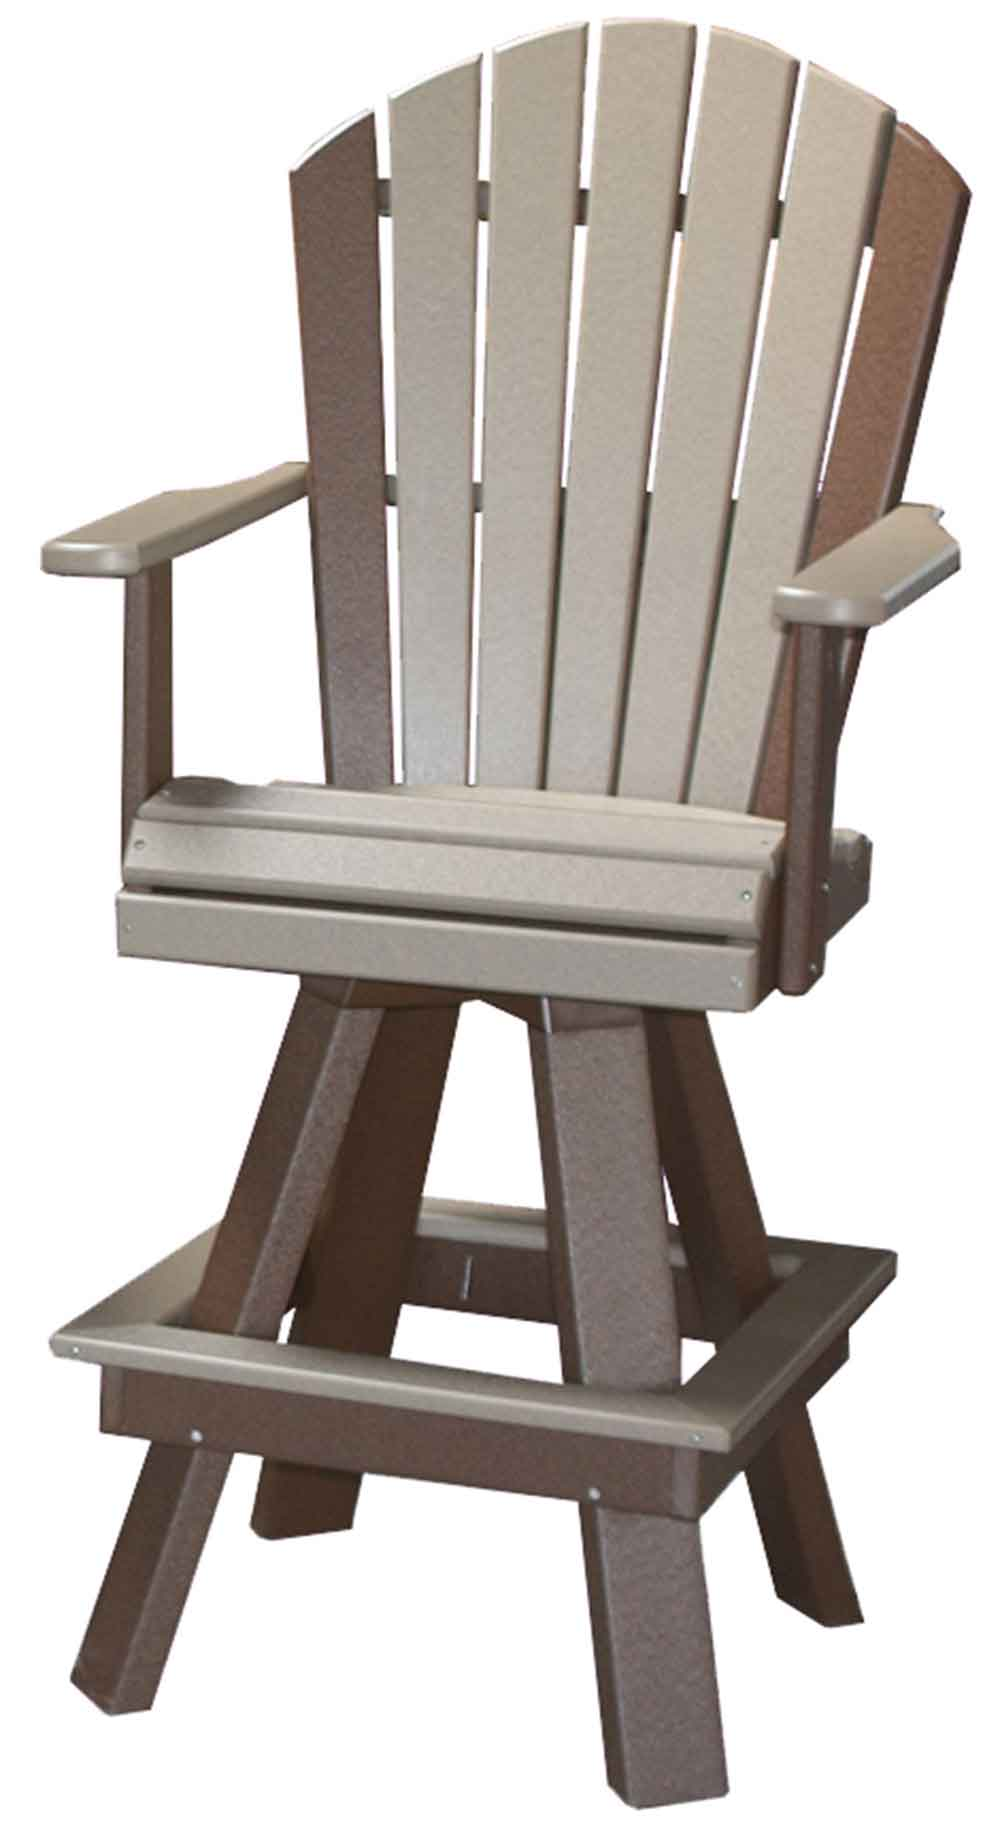 bedroom chair swing ribbed leather office amish made outdoor furniture